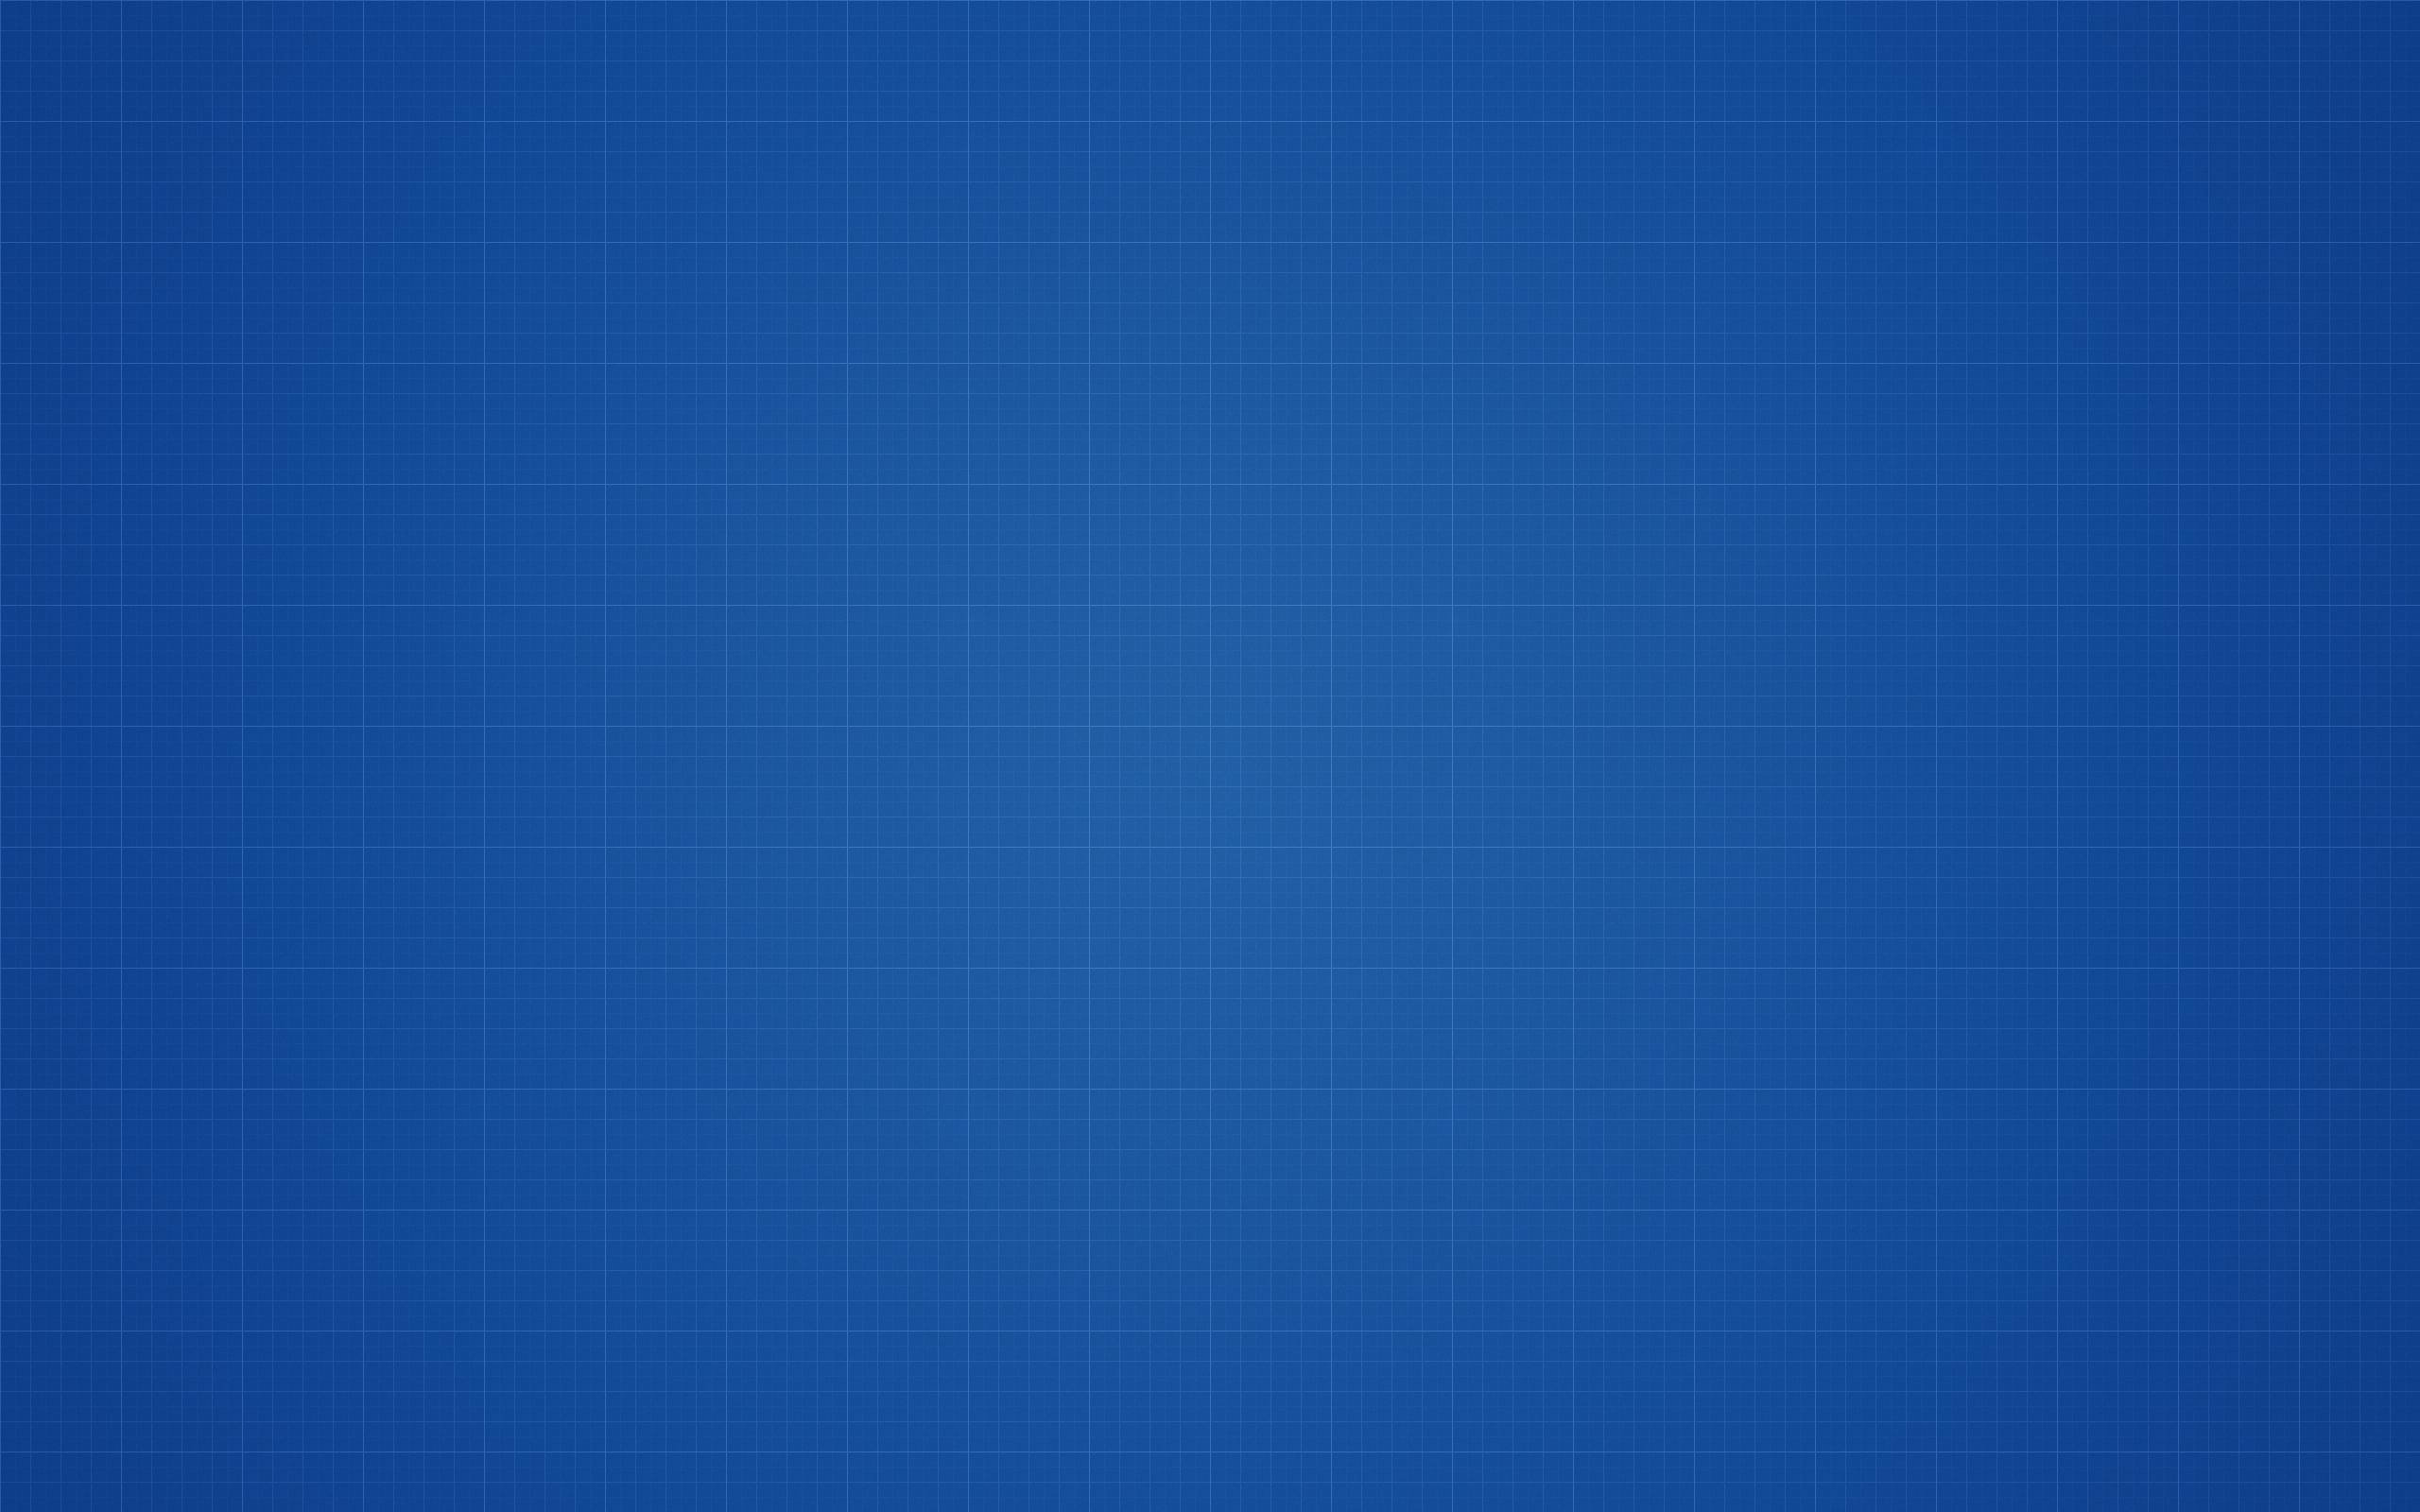 Blueprint Background Download 2560x1600